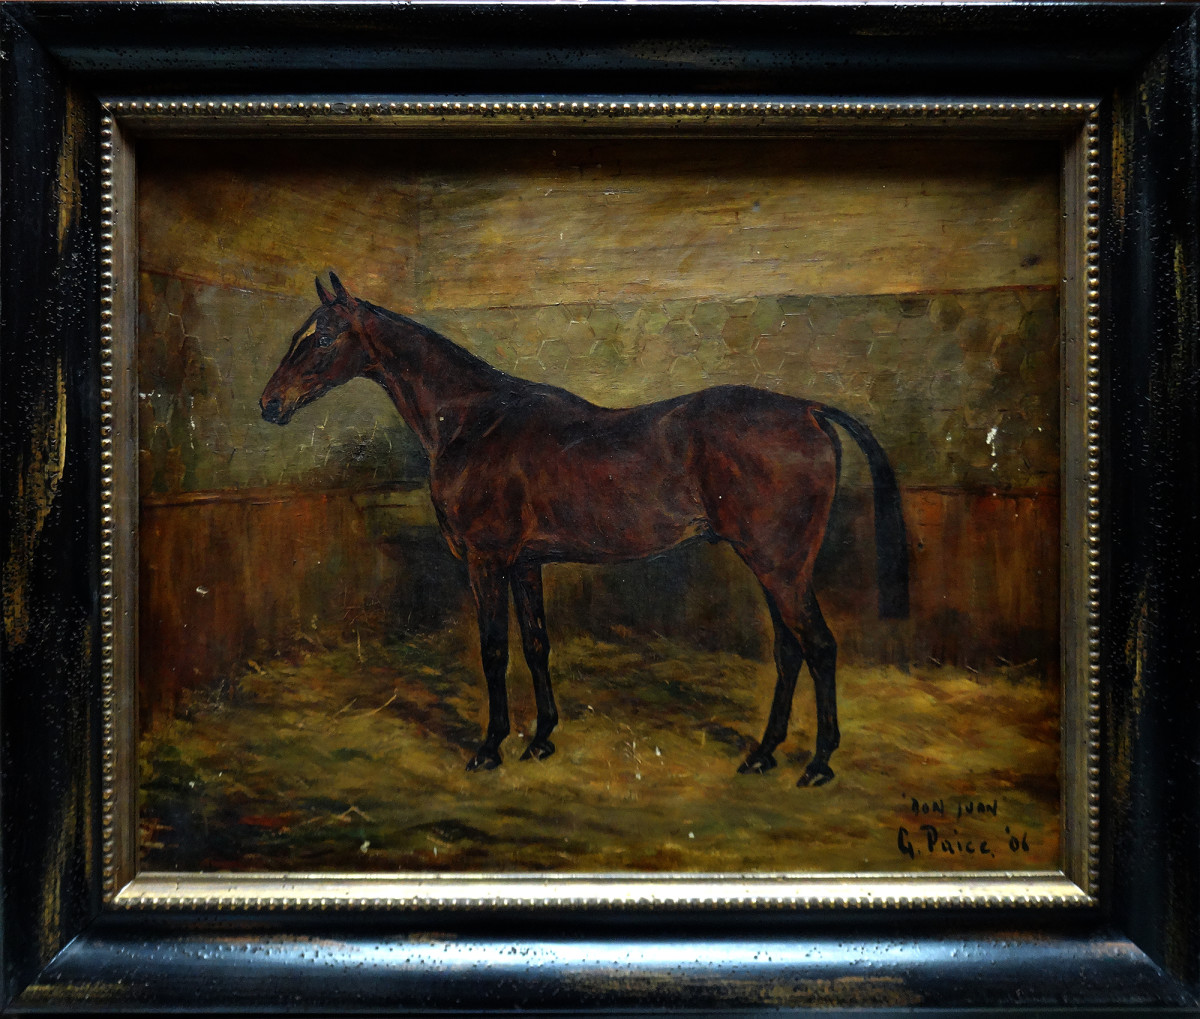 0030 - Portrait of a Horse 'Don Juan' by G Paice